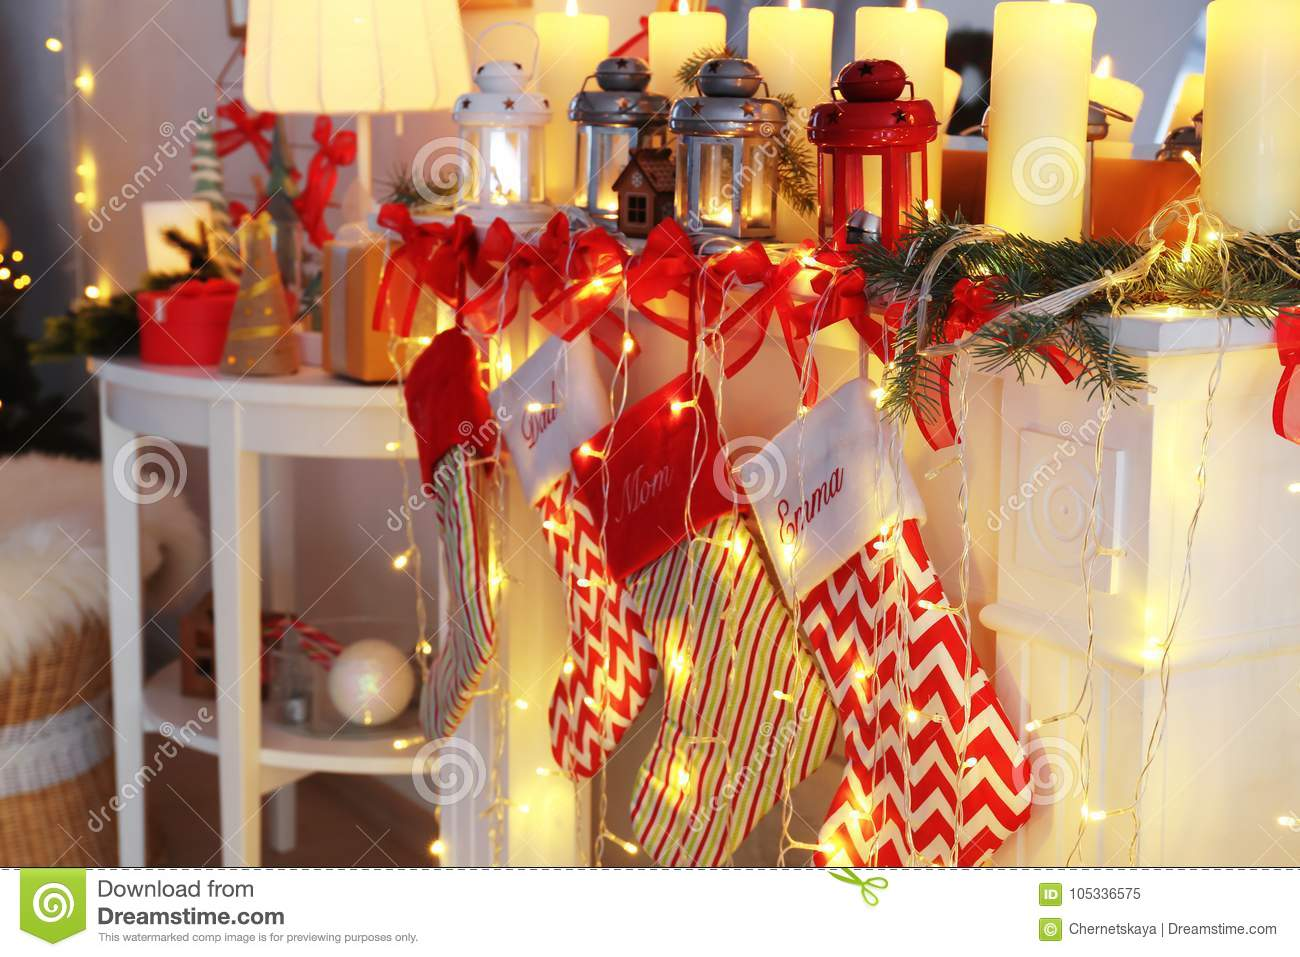 Christmas Lanterns.Decorated Fireplace With Christmas Lanterns Candles And